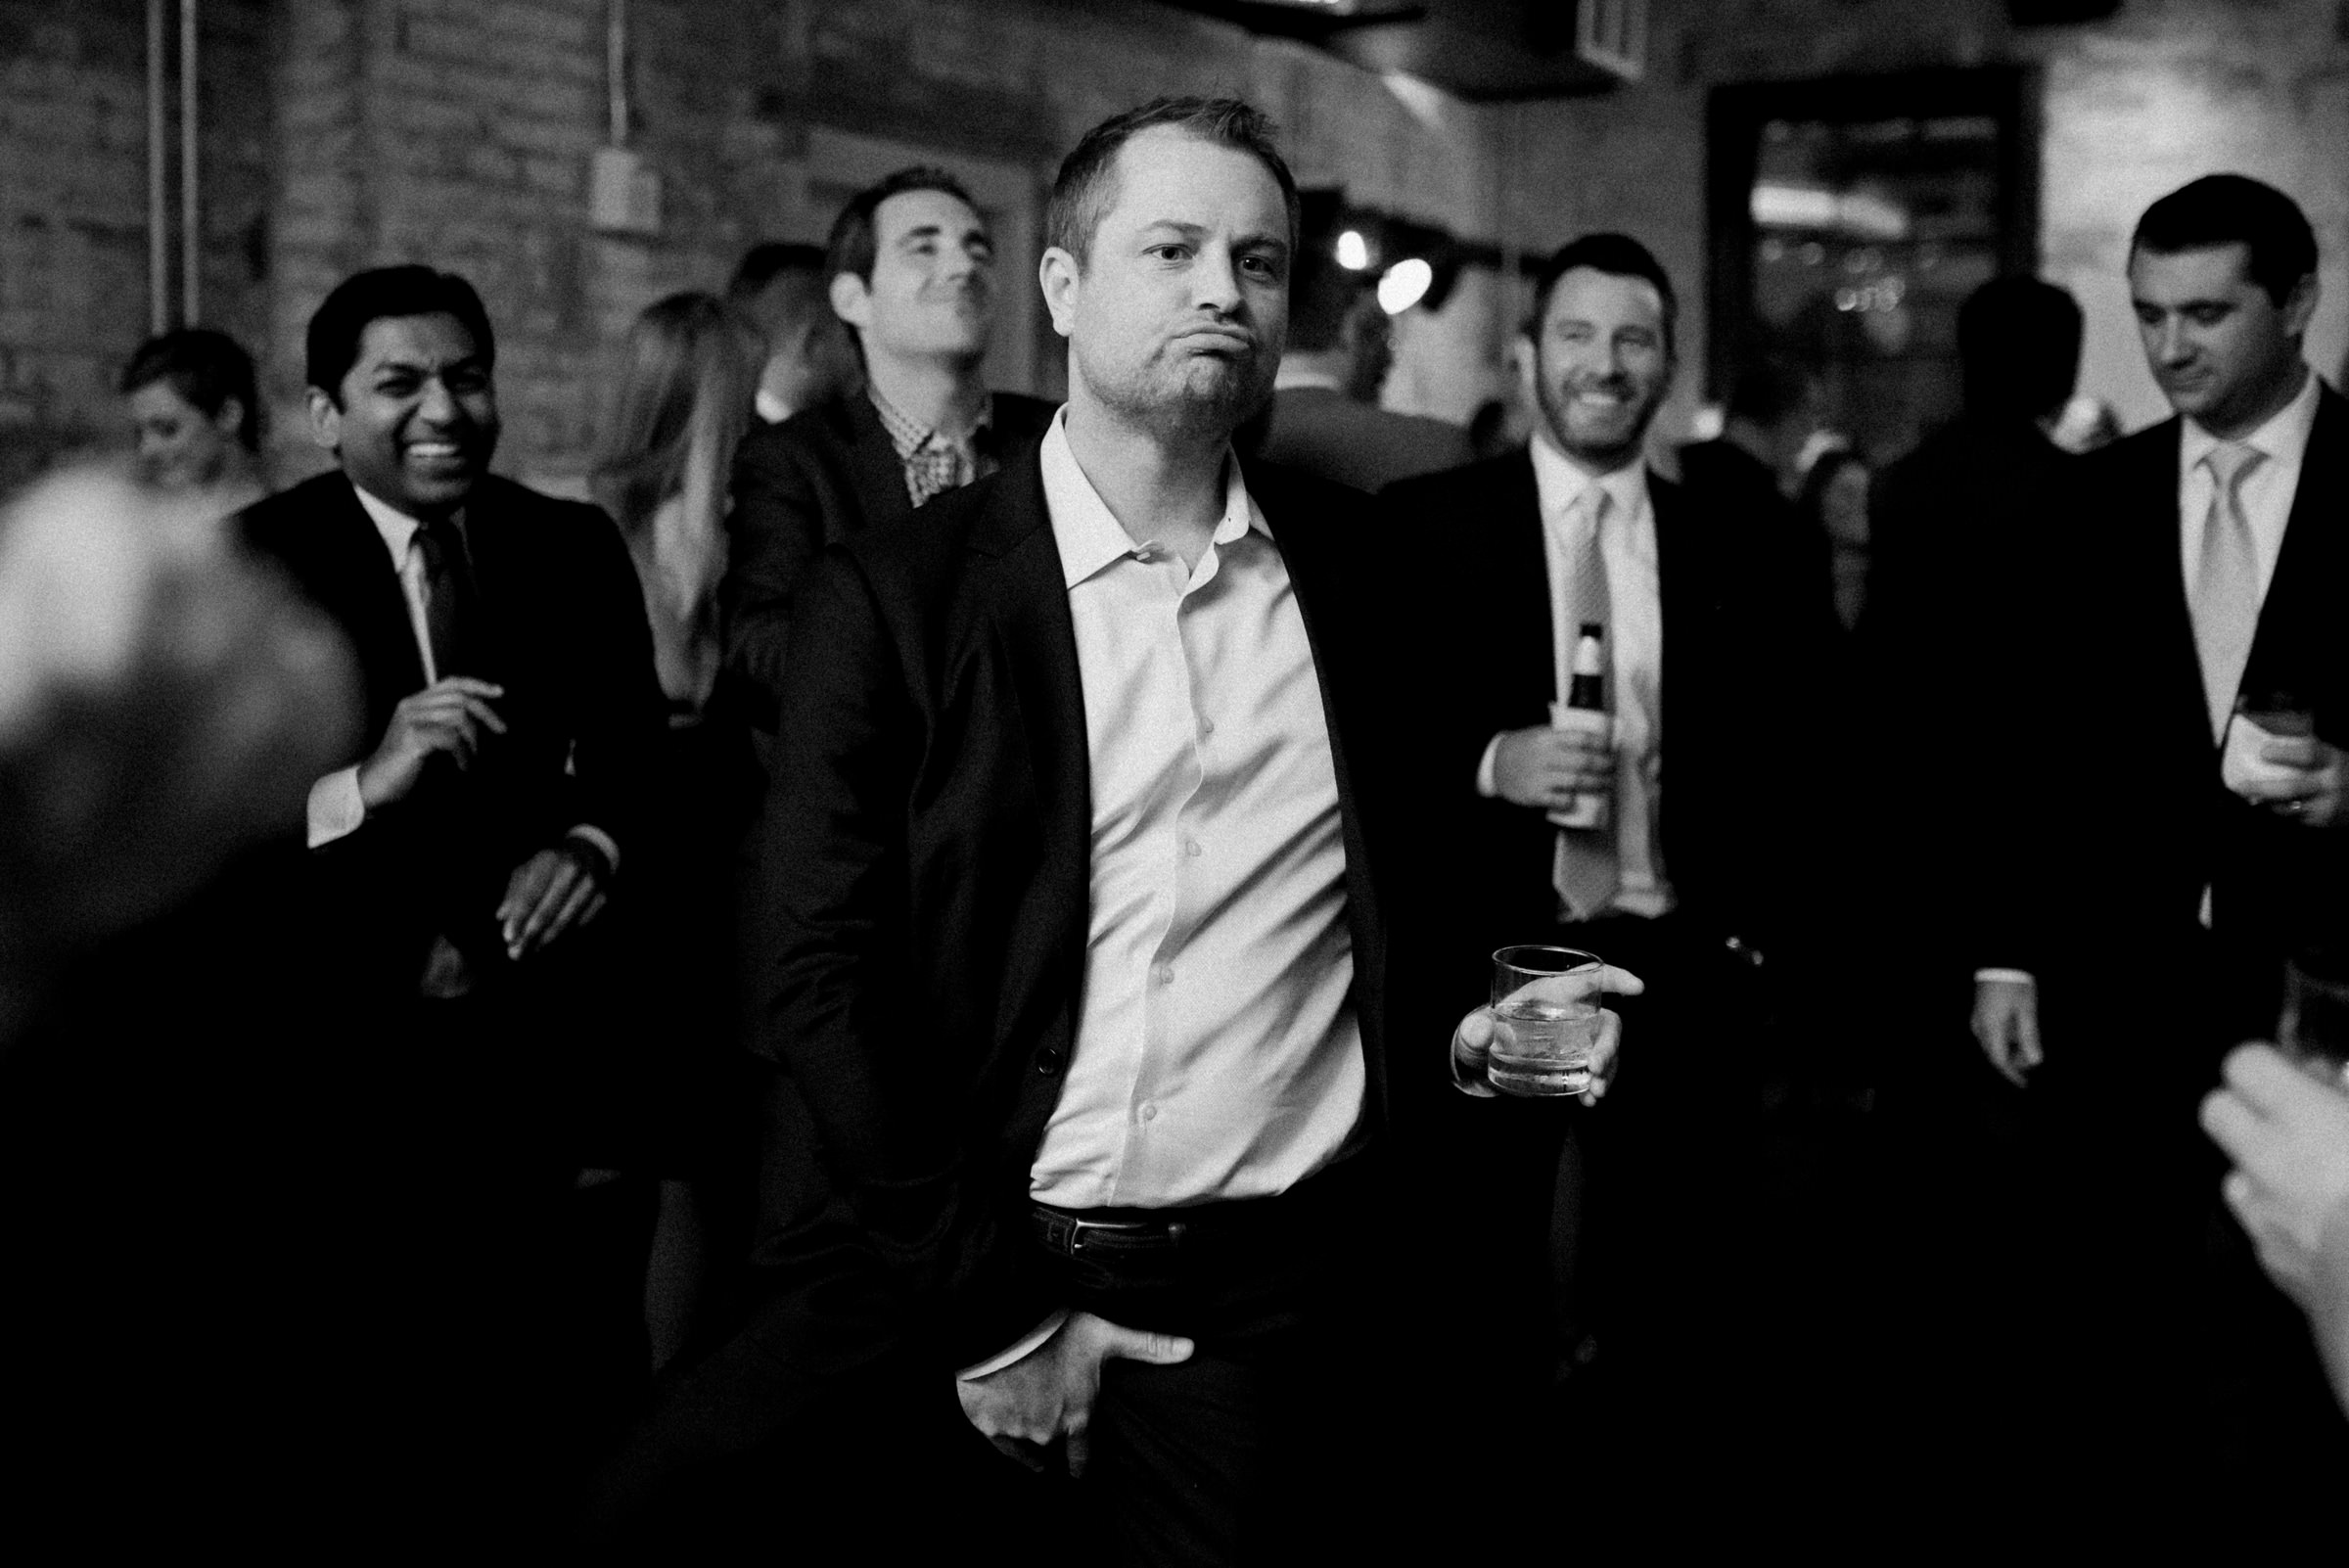 groom-dancing-the-night-away-at-the-reception-with-his-groomsmen-new-orleans-austin-houston-wedding-photogra-photo-by-dark-roux